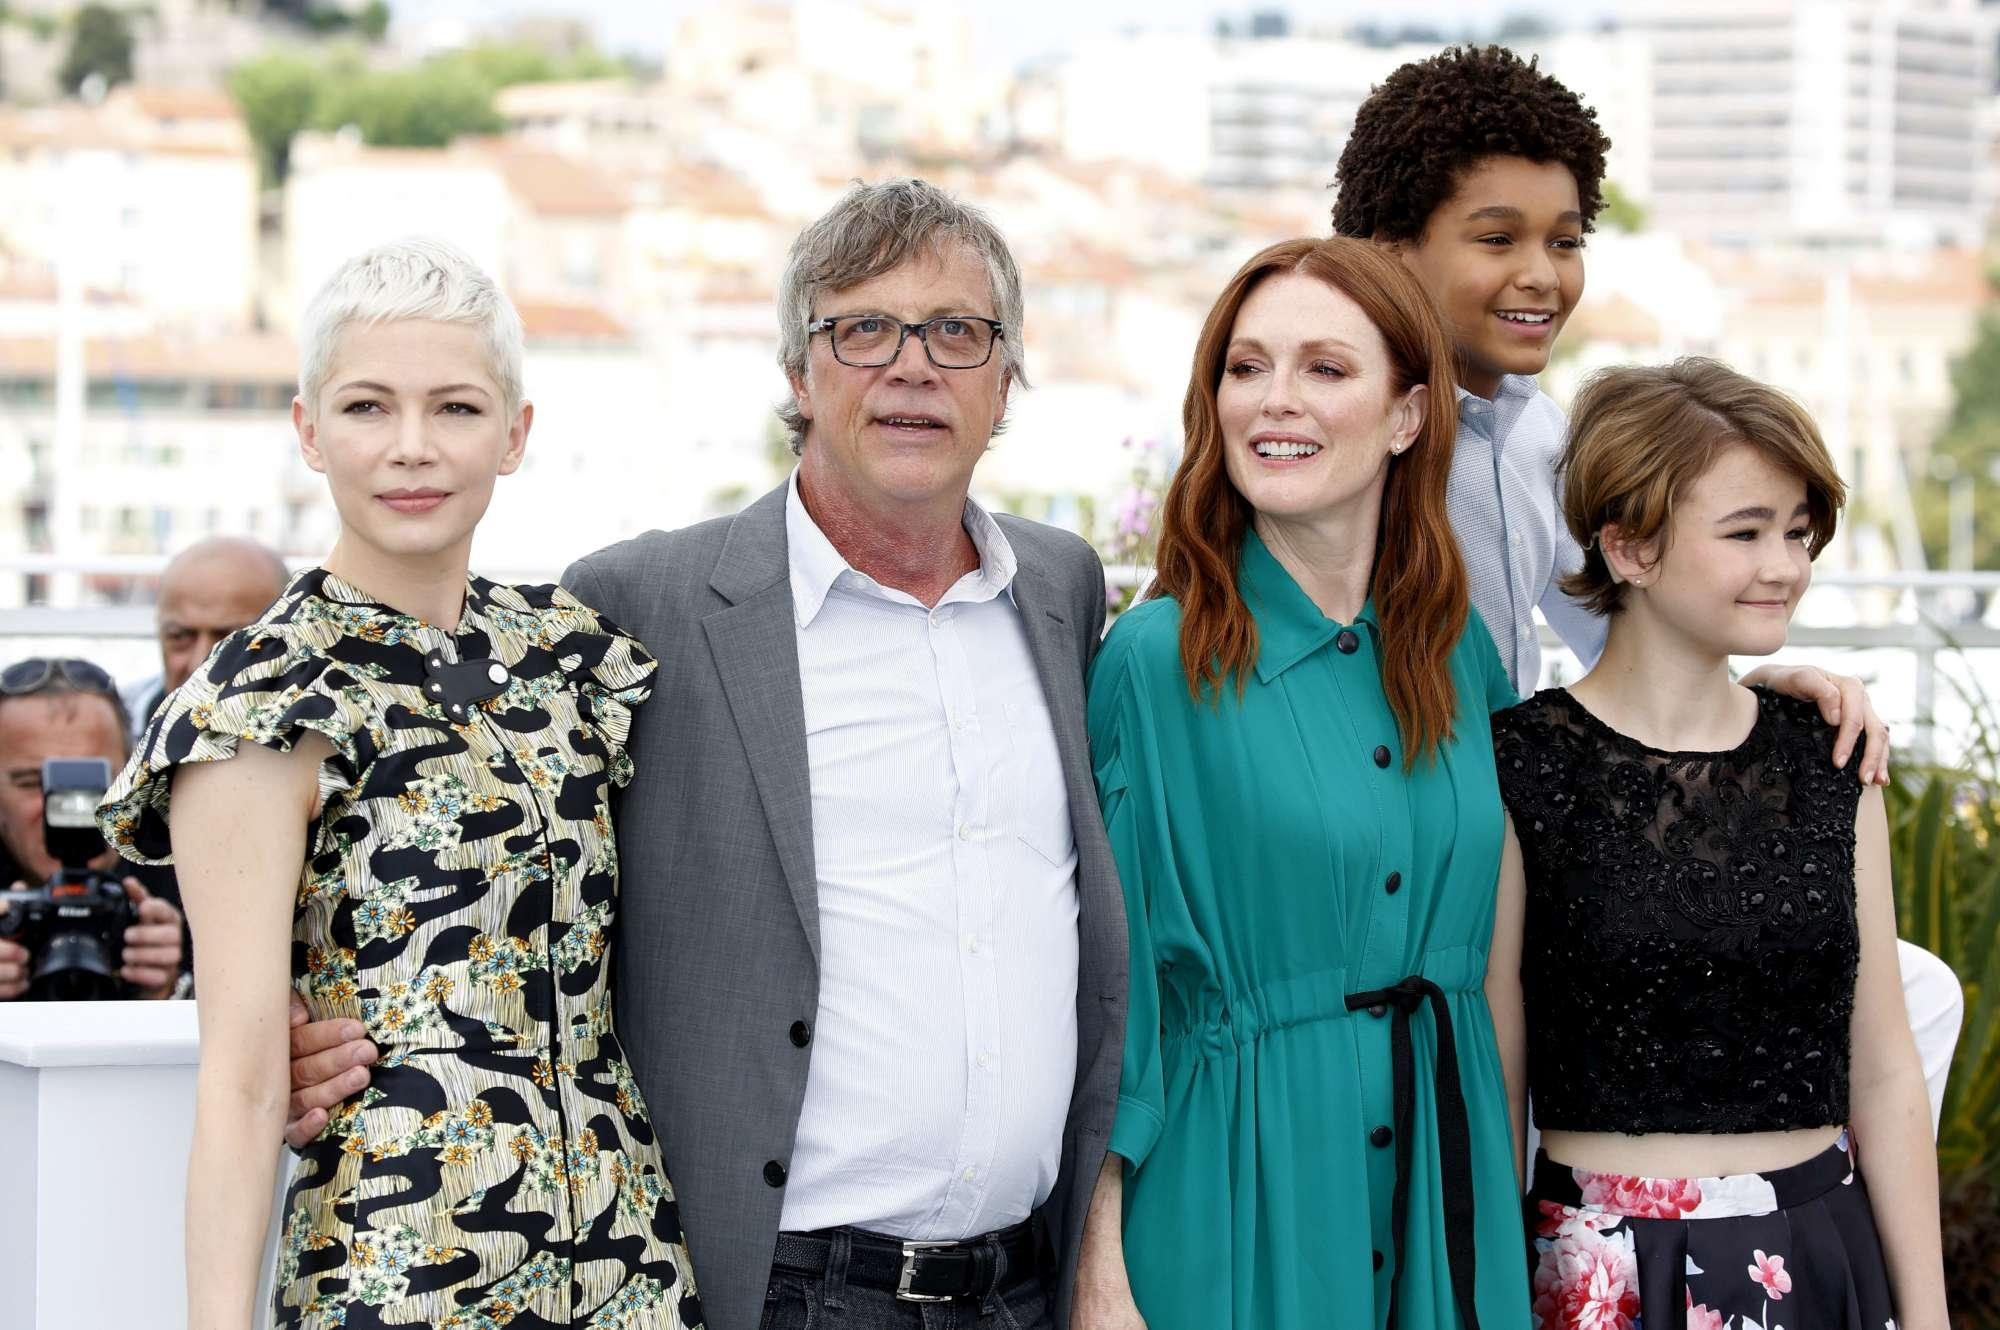 A Cannes il photocall del film  Wonderstruck  con Julianne Moore e Michelle Williams